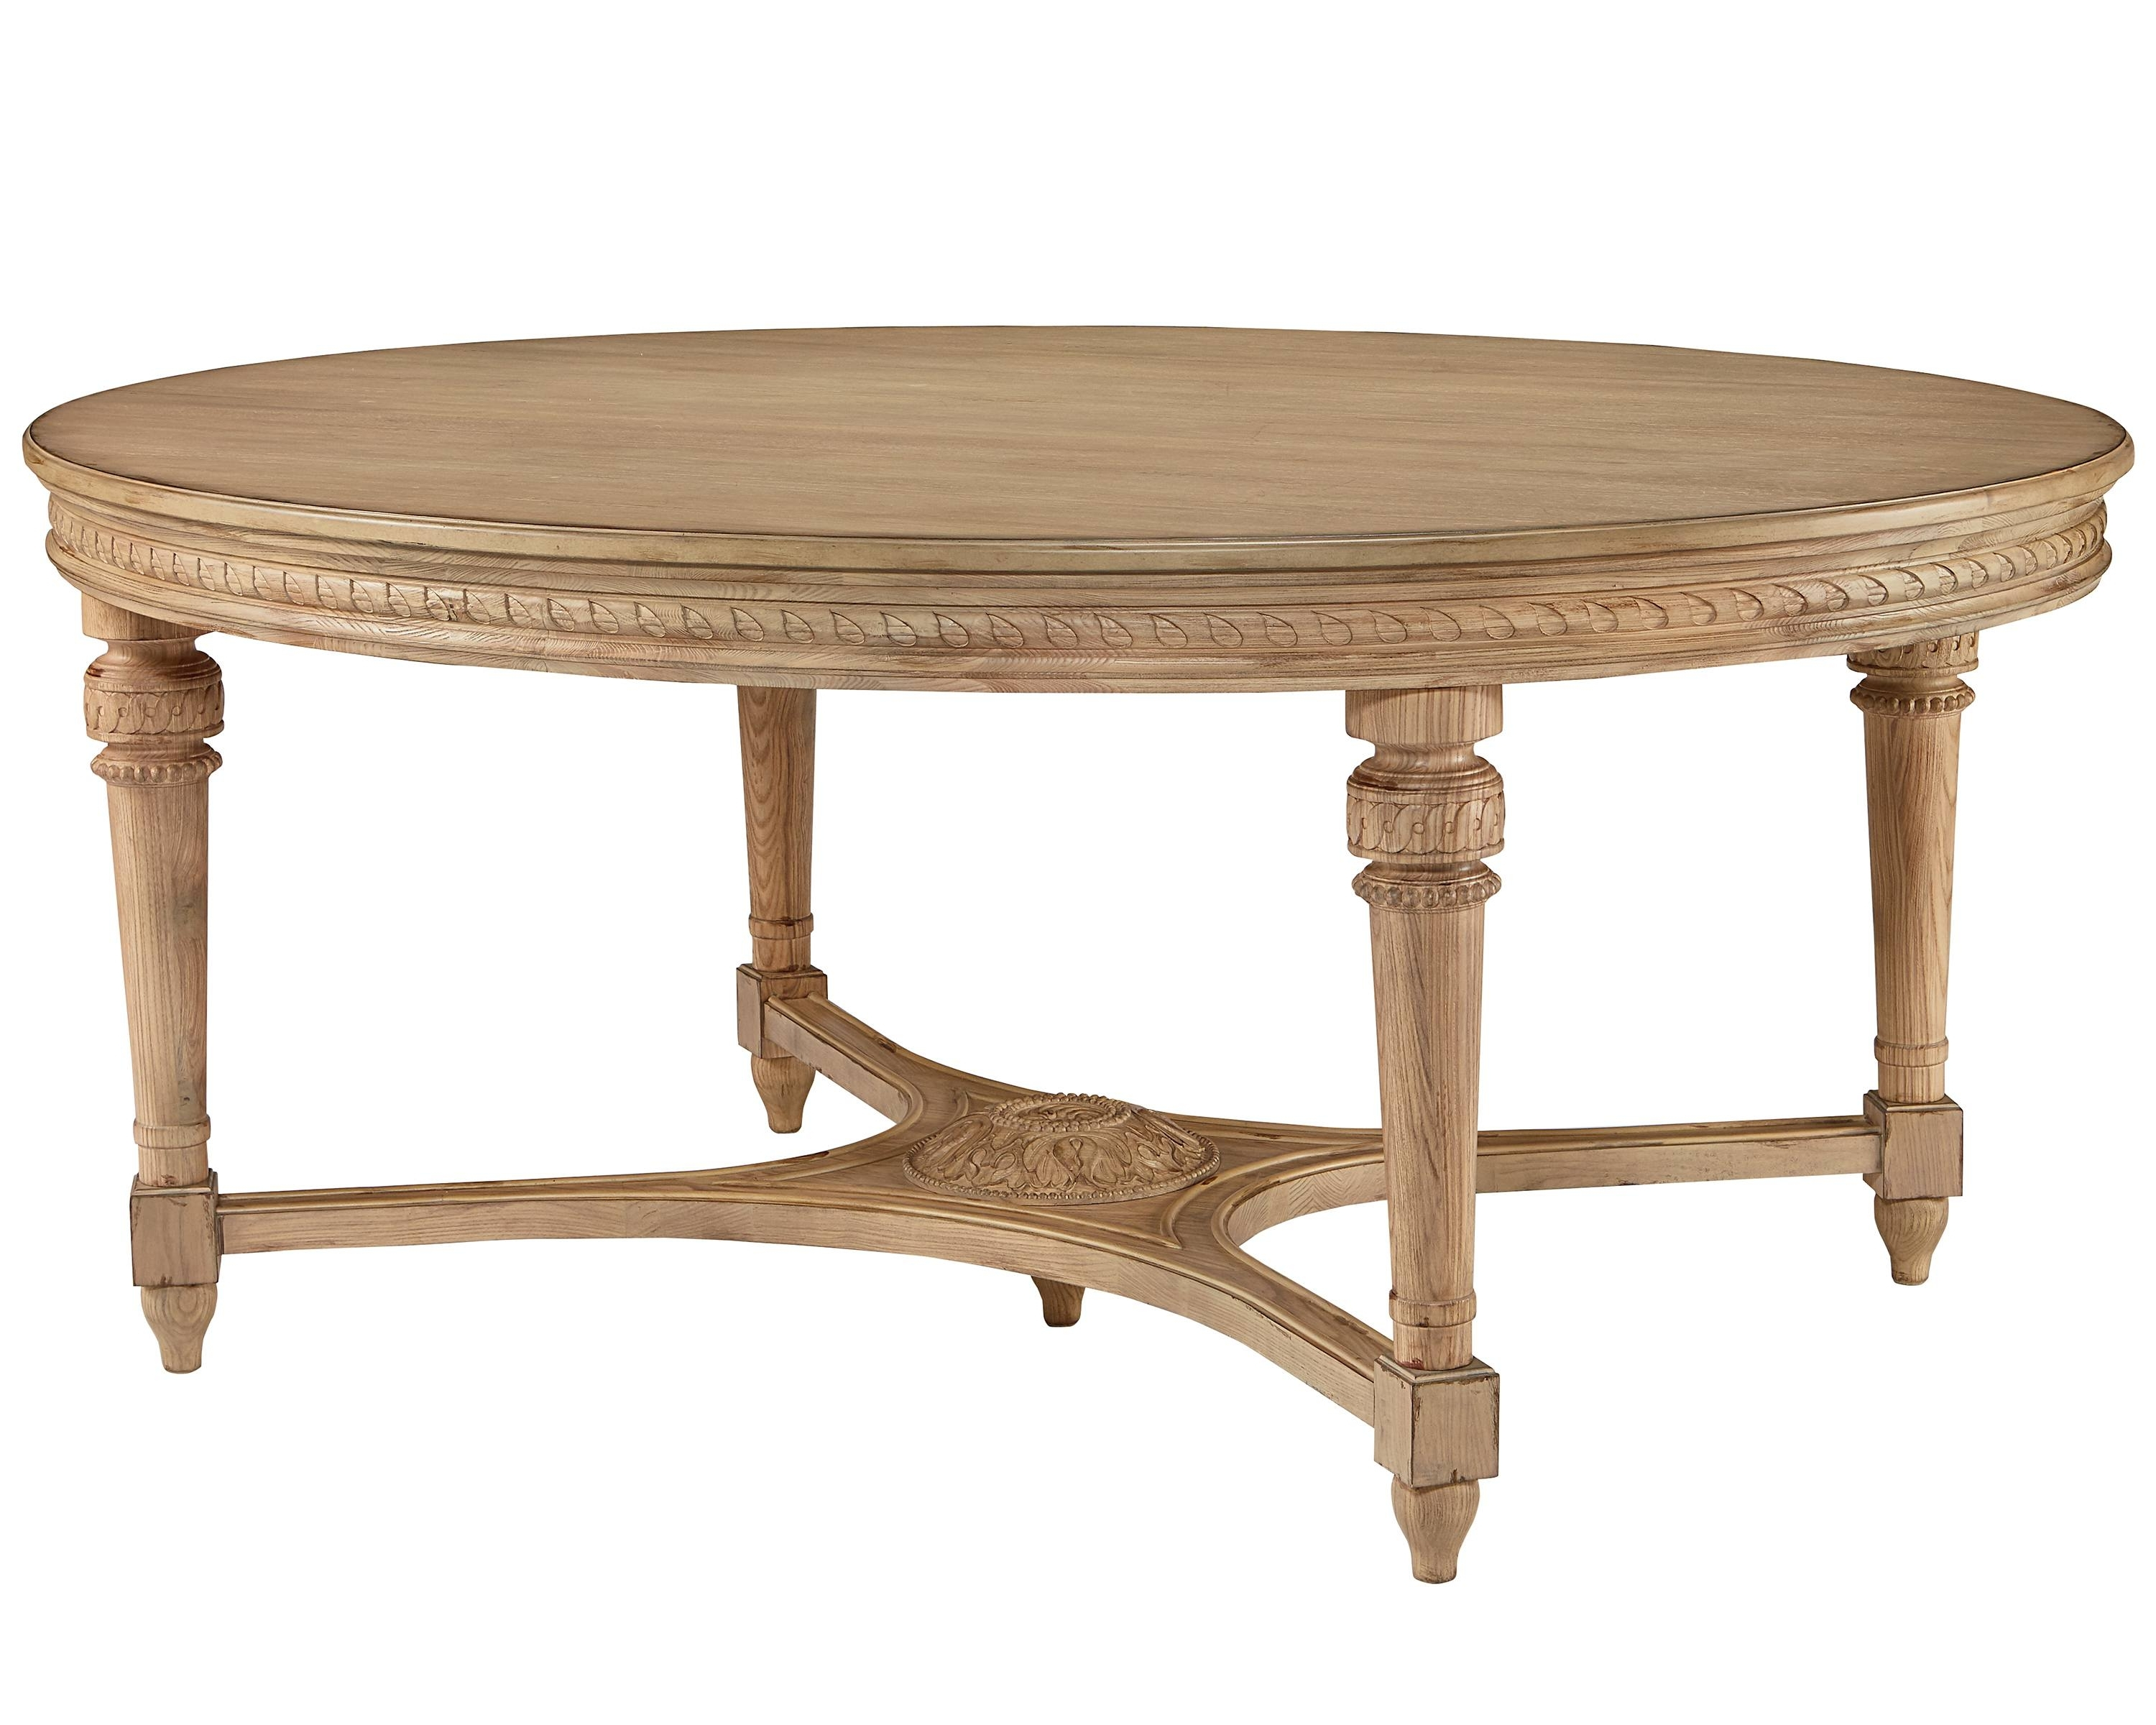 Magnolia Home English Country Oval Dining Tables Regarding Preferred English Country Oval Dining Table – Magnolia Home (View 15 of 25)